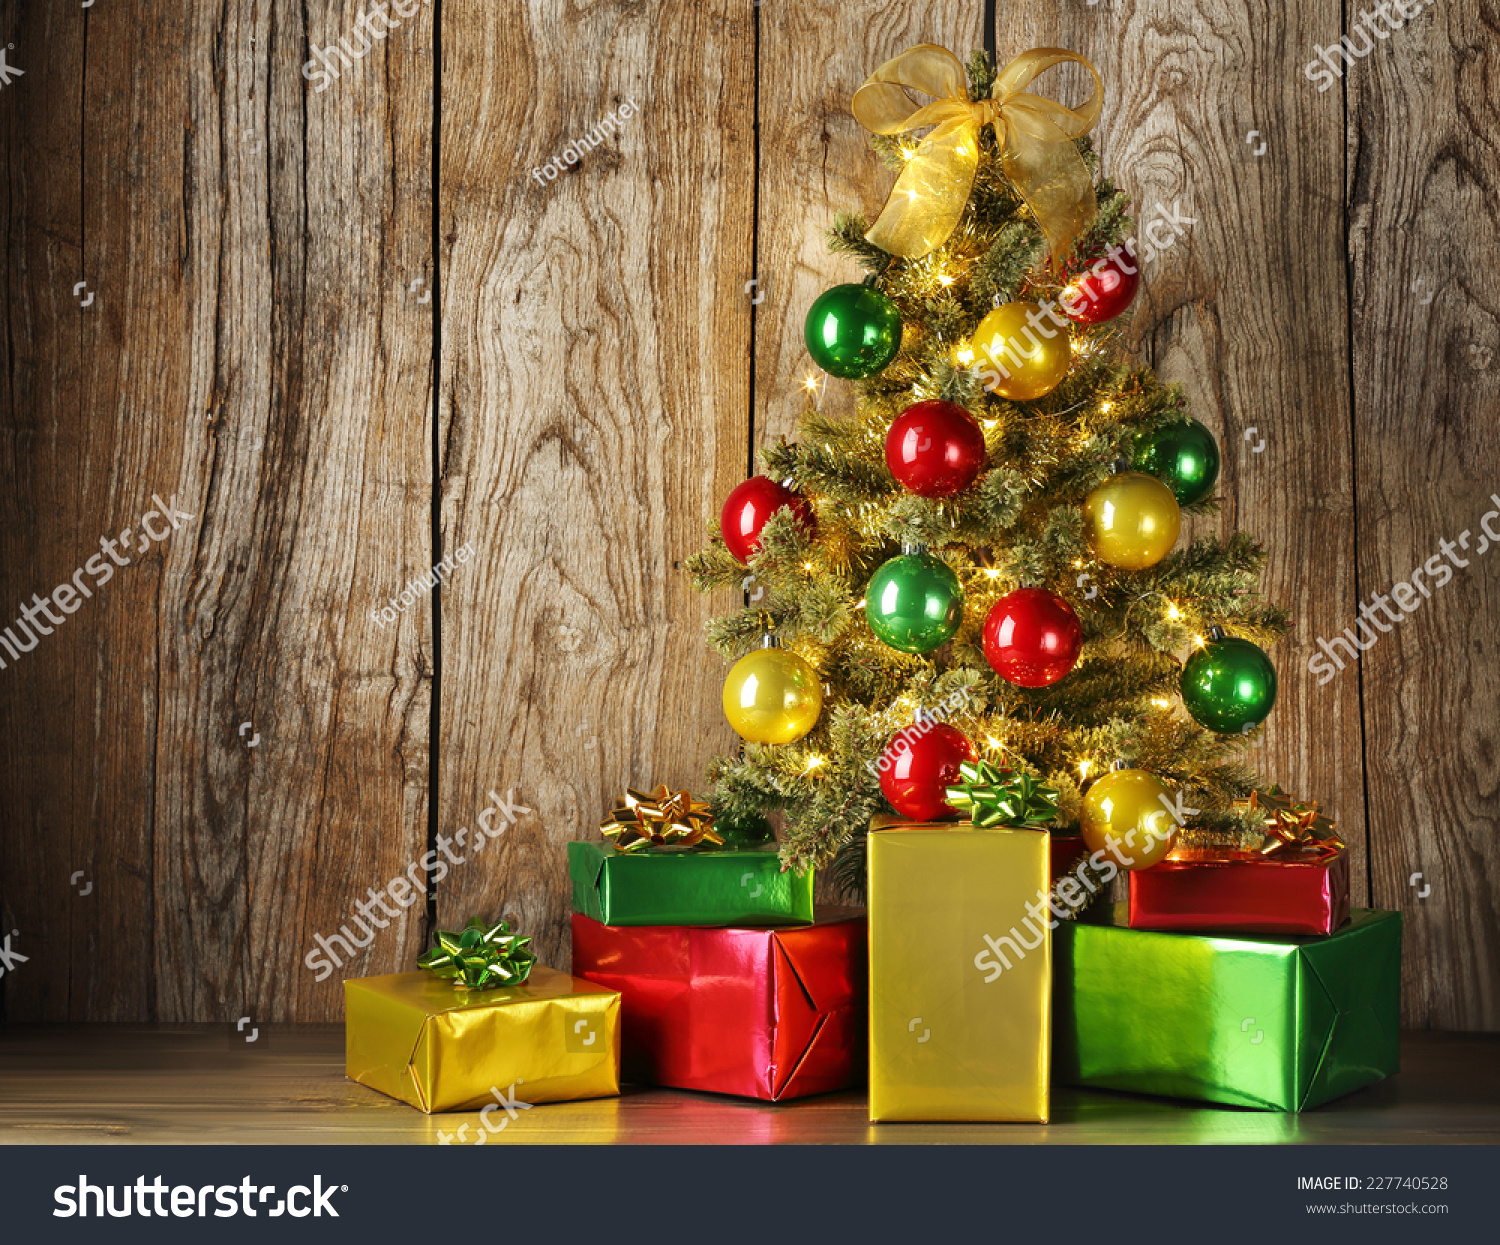 Christmas tree with gift boxes on grunge wood background